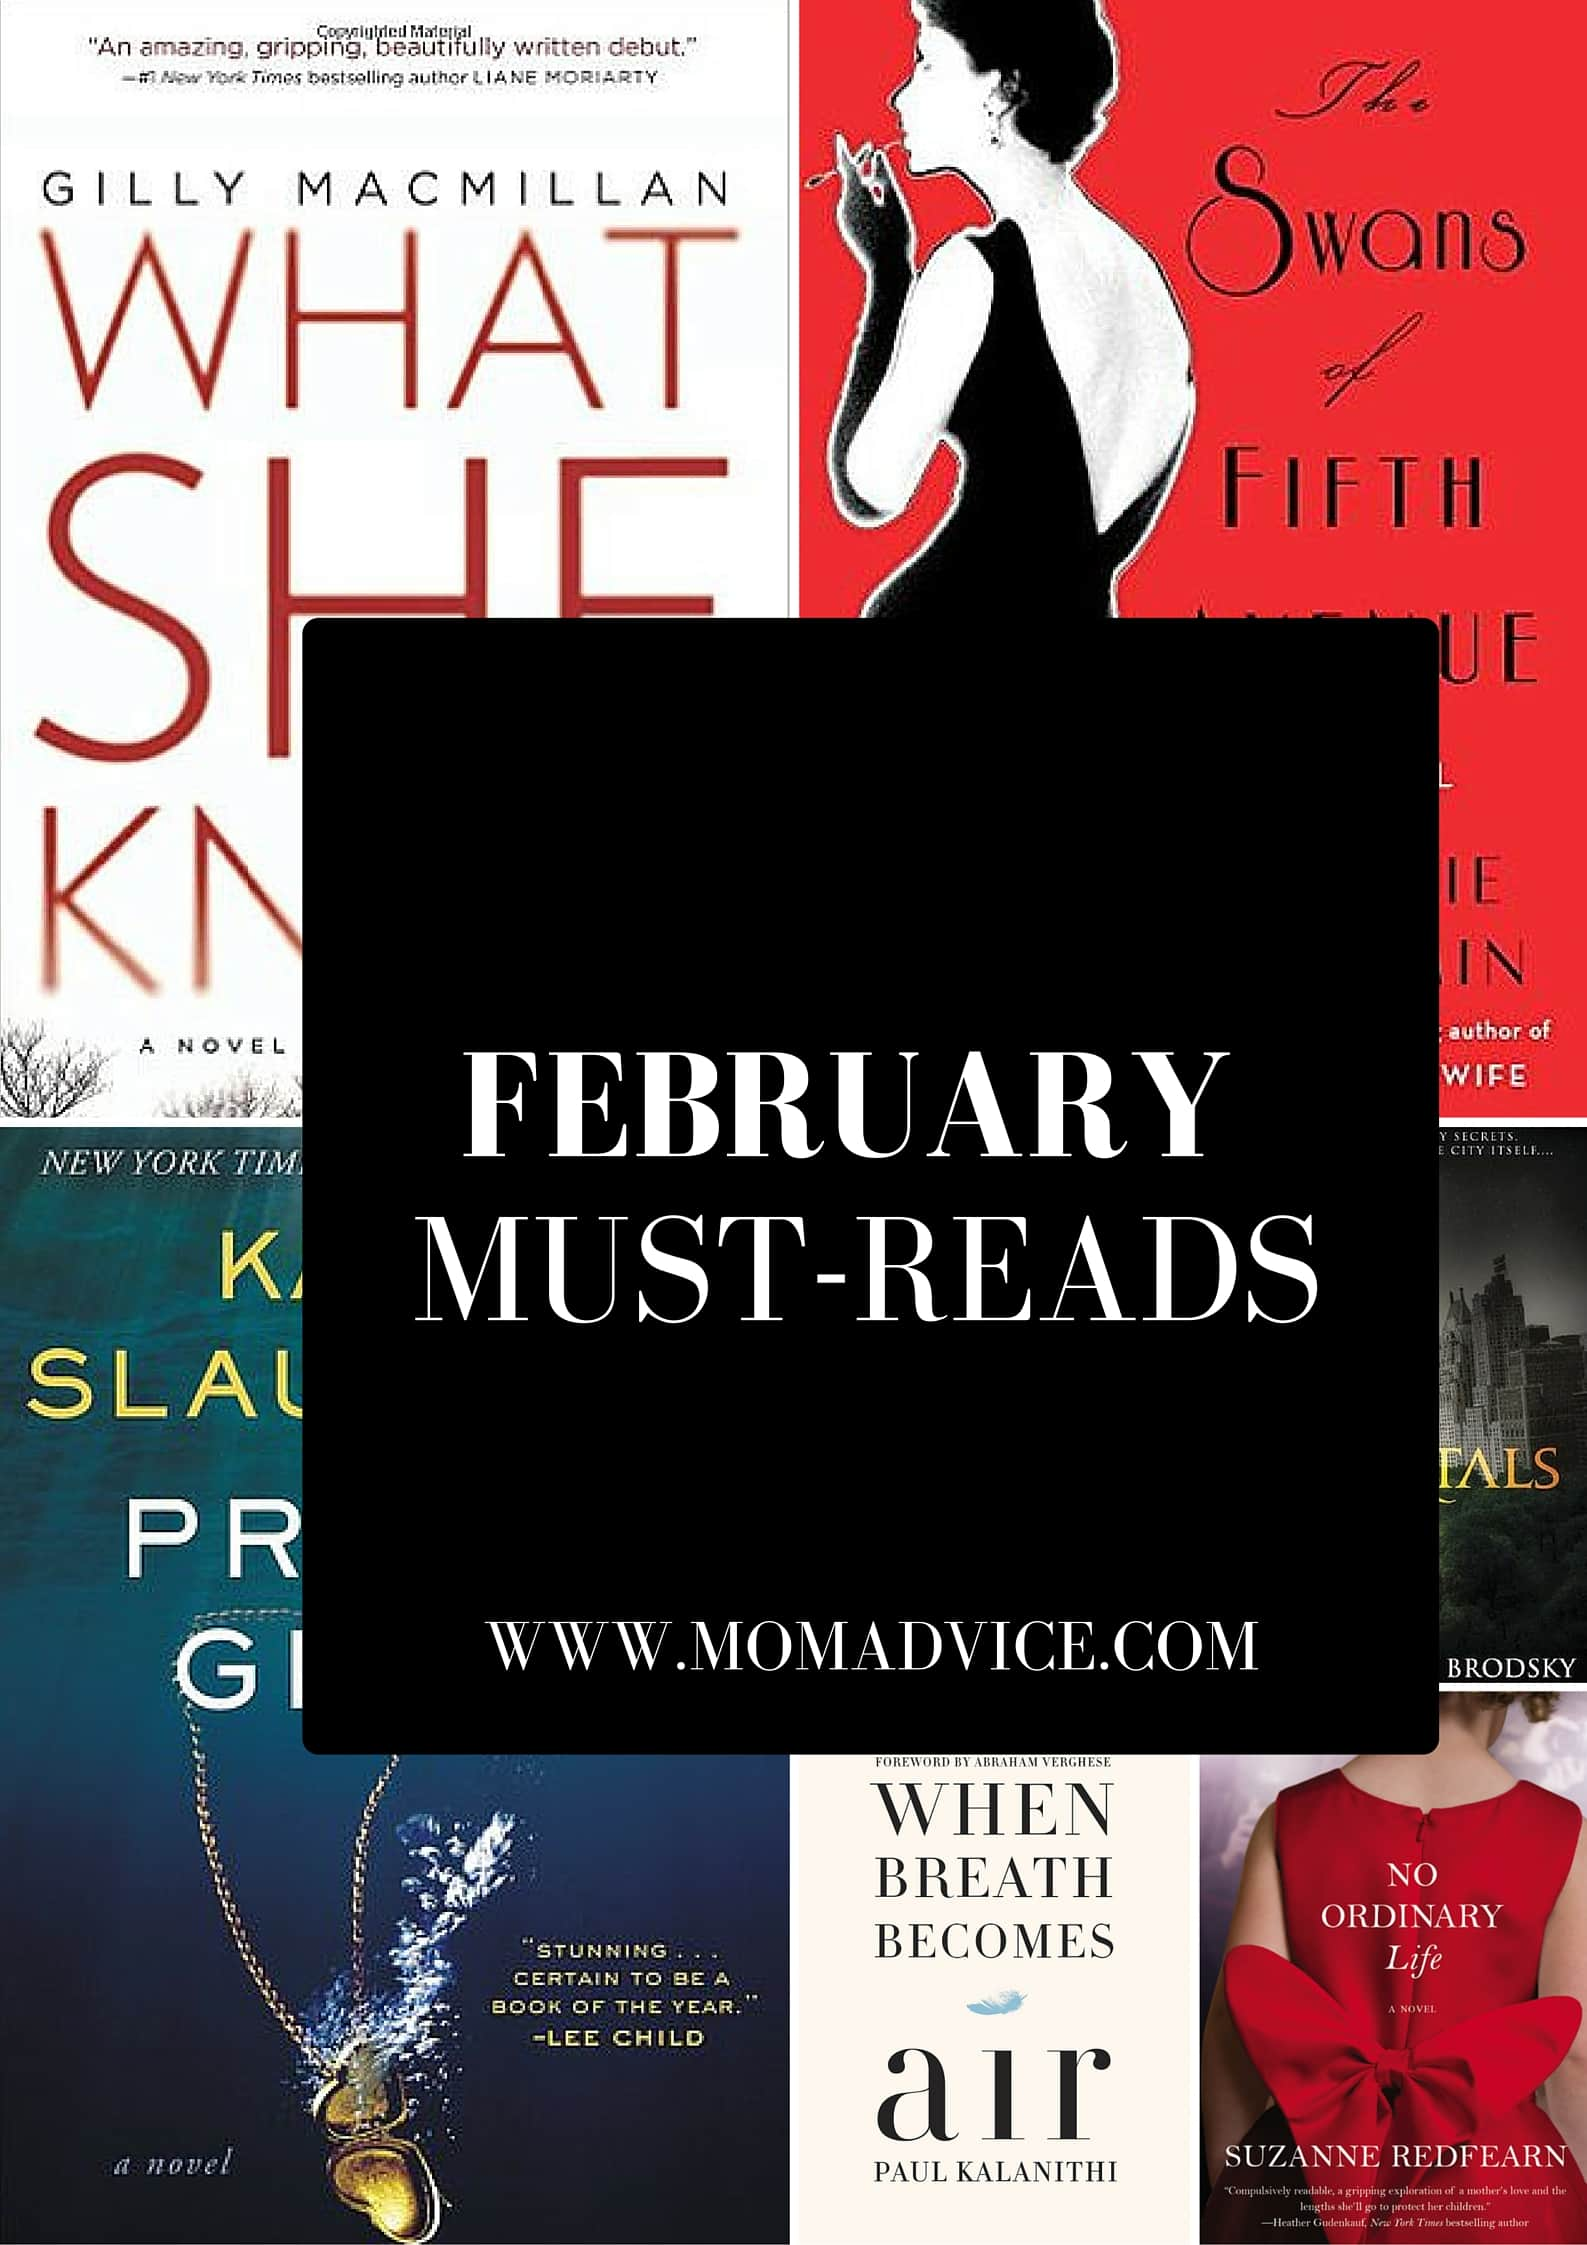 February 2016 Must-Reads from MomAdvice.com